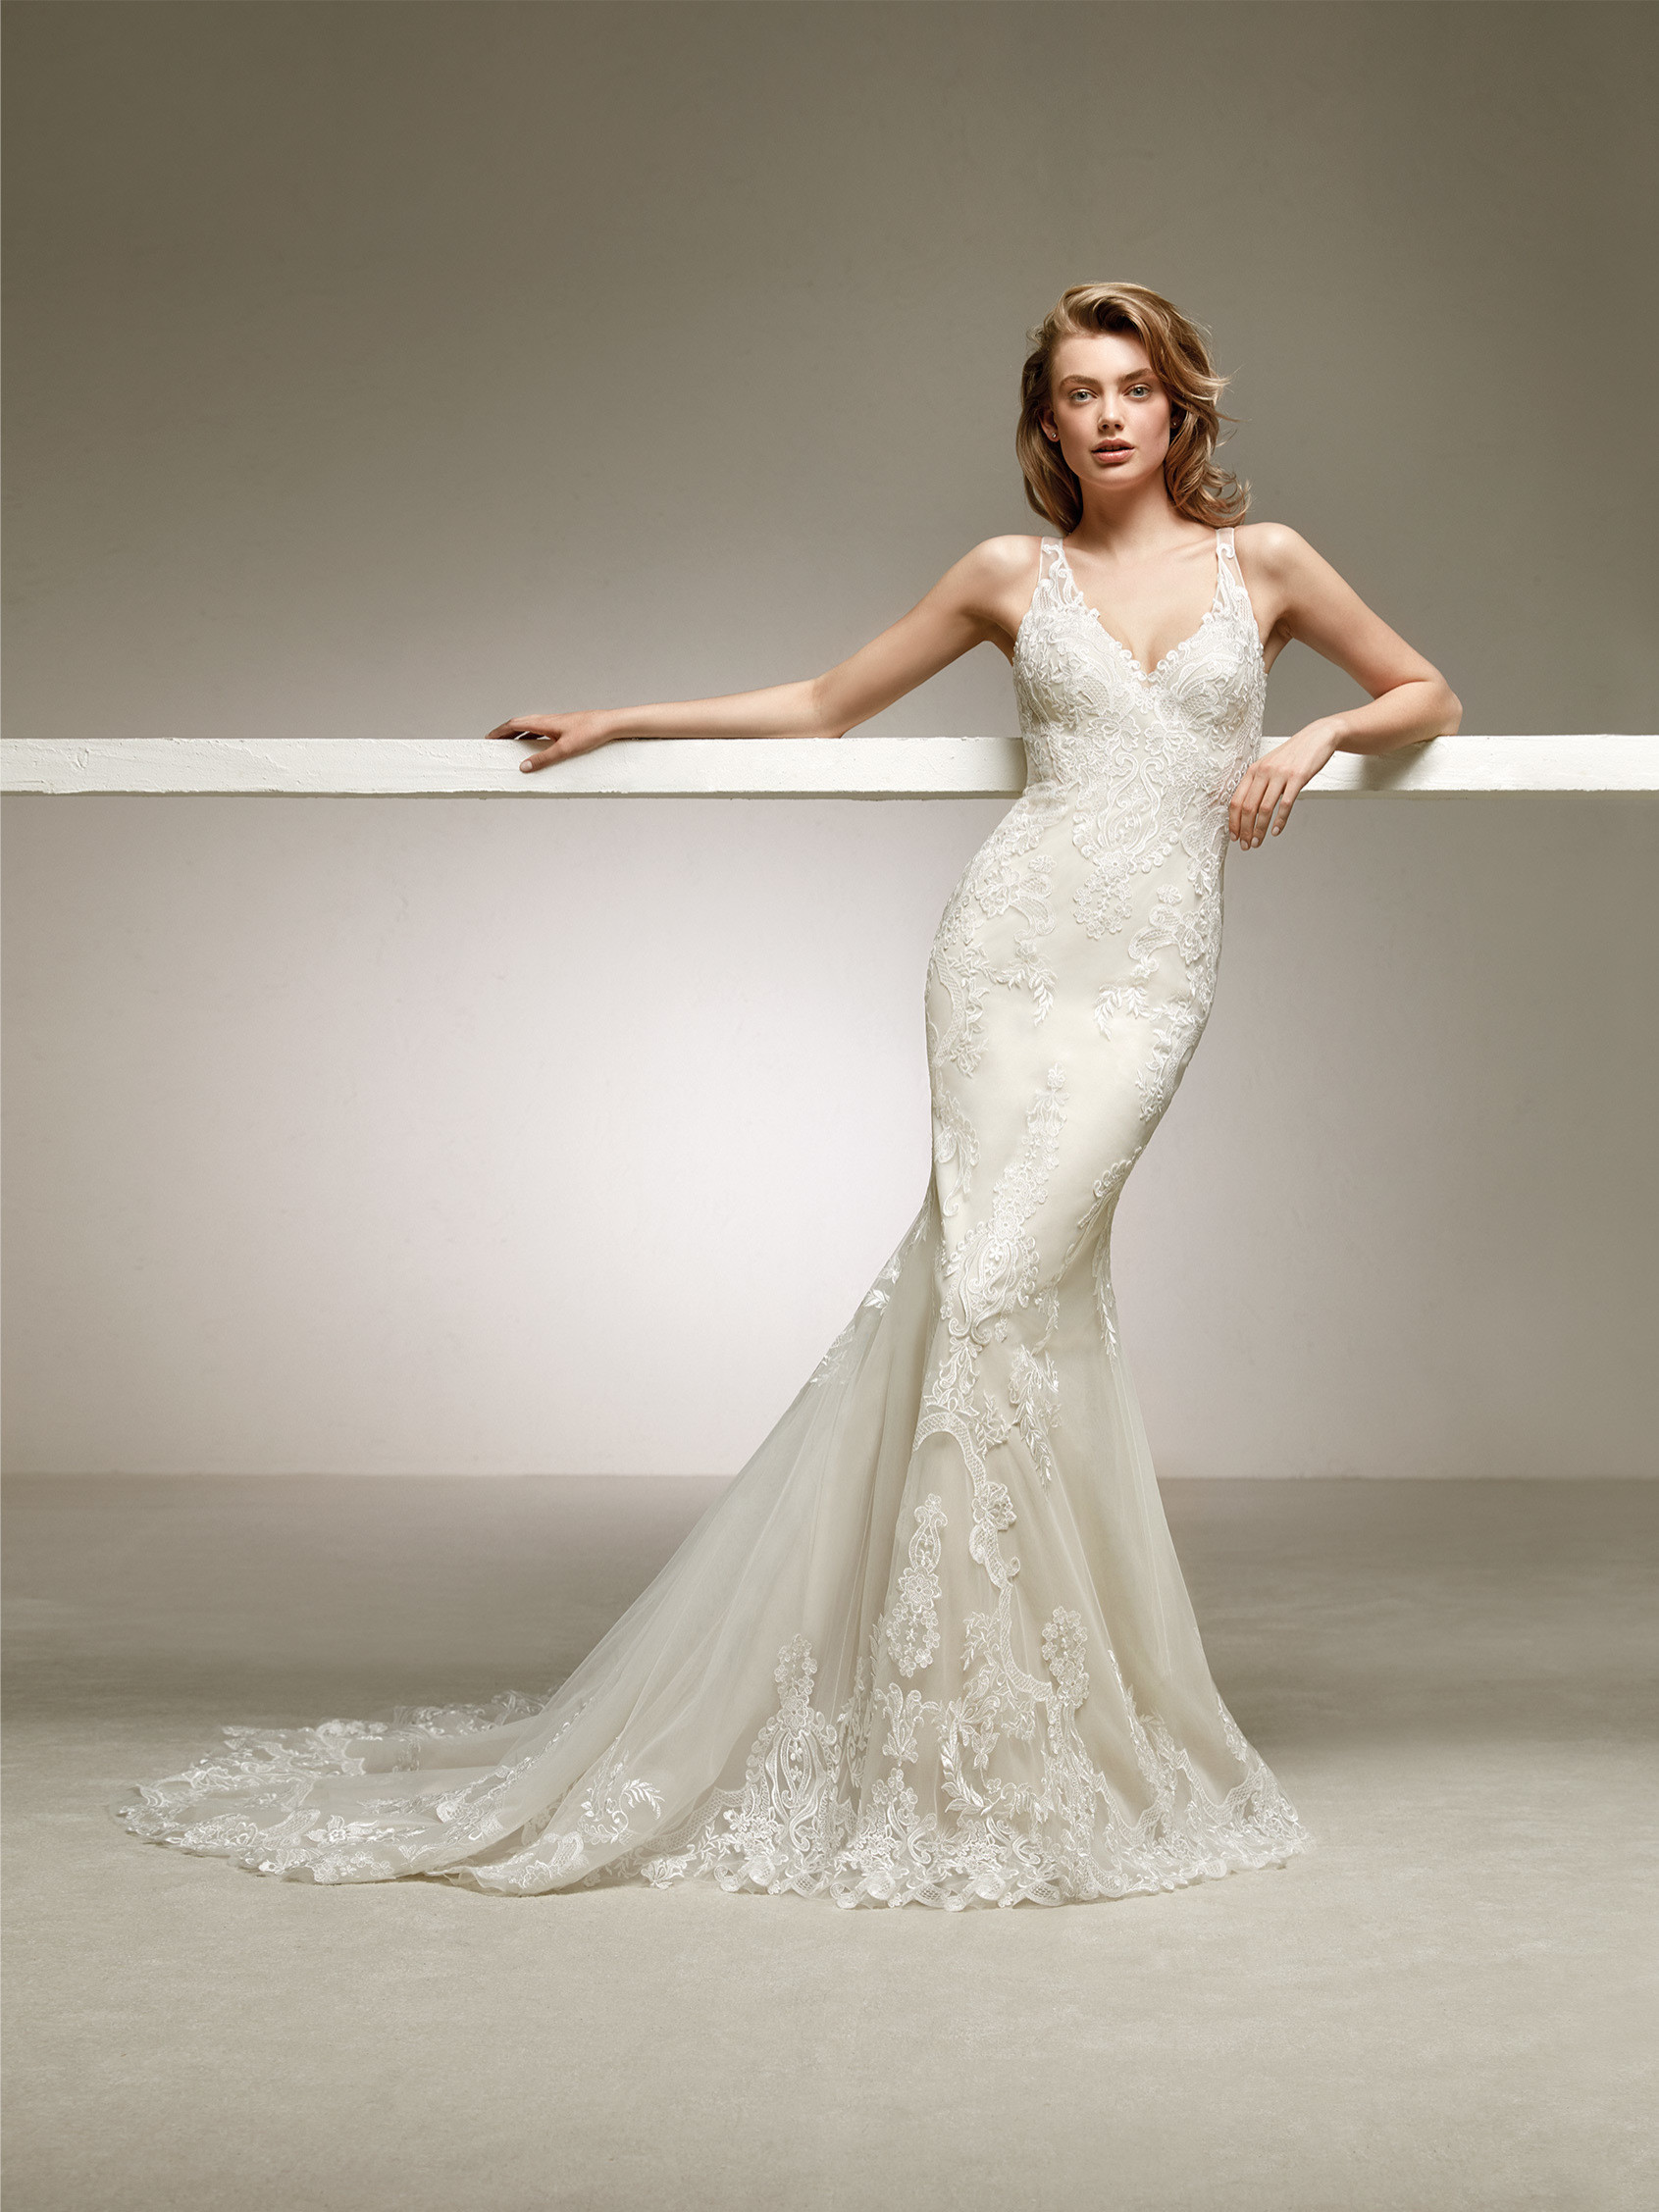 Mermaid Wedding Dress With Spectacular Back Dogal